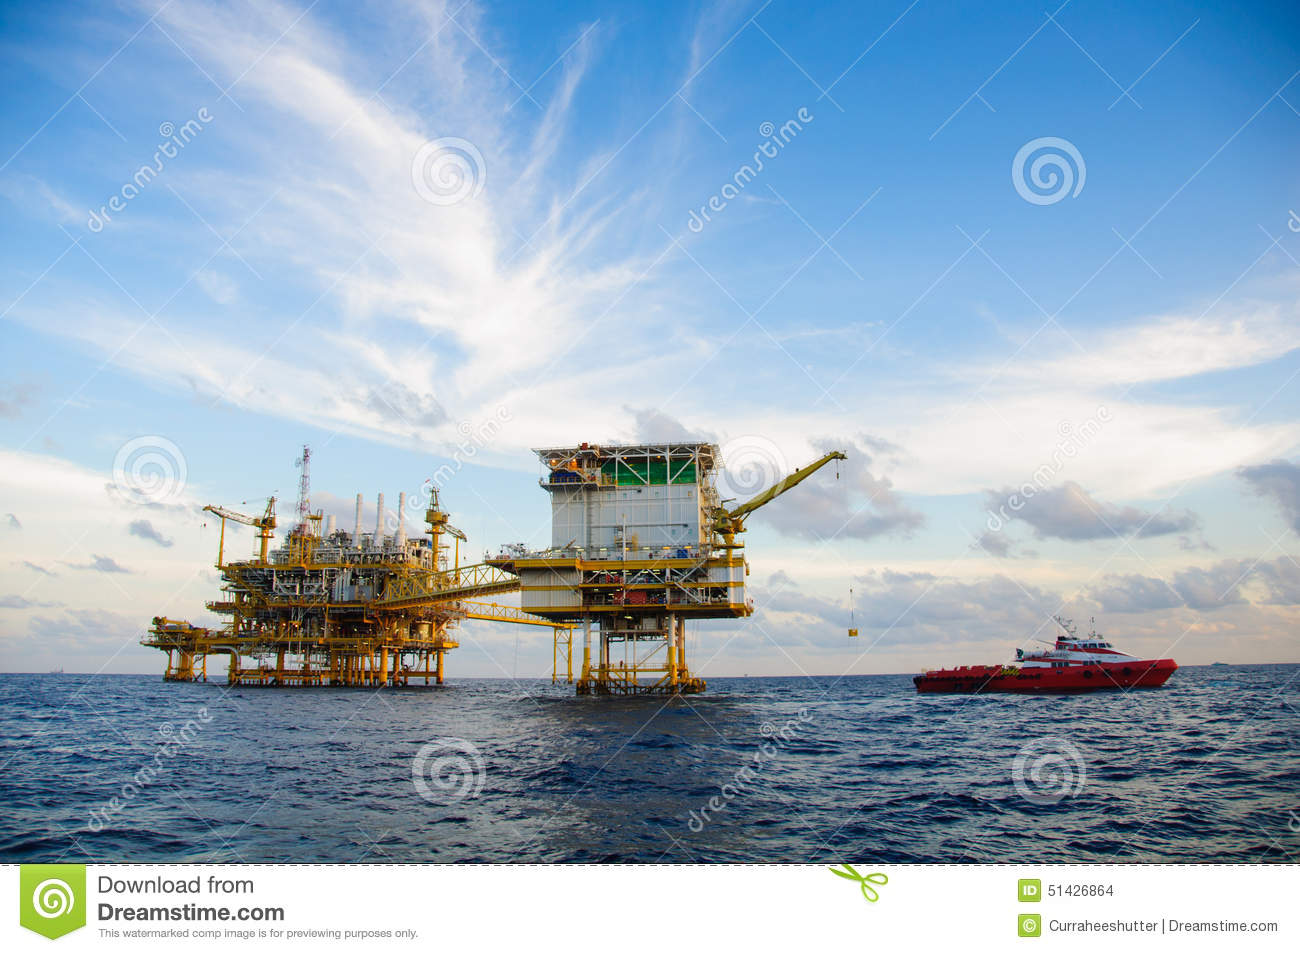 Oil and gas platform in the gulf or the sea, Offshore oil and rig construction, Energy business